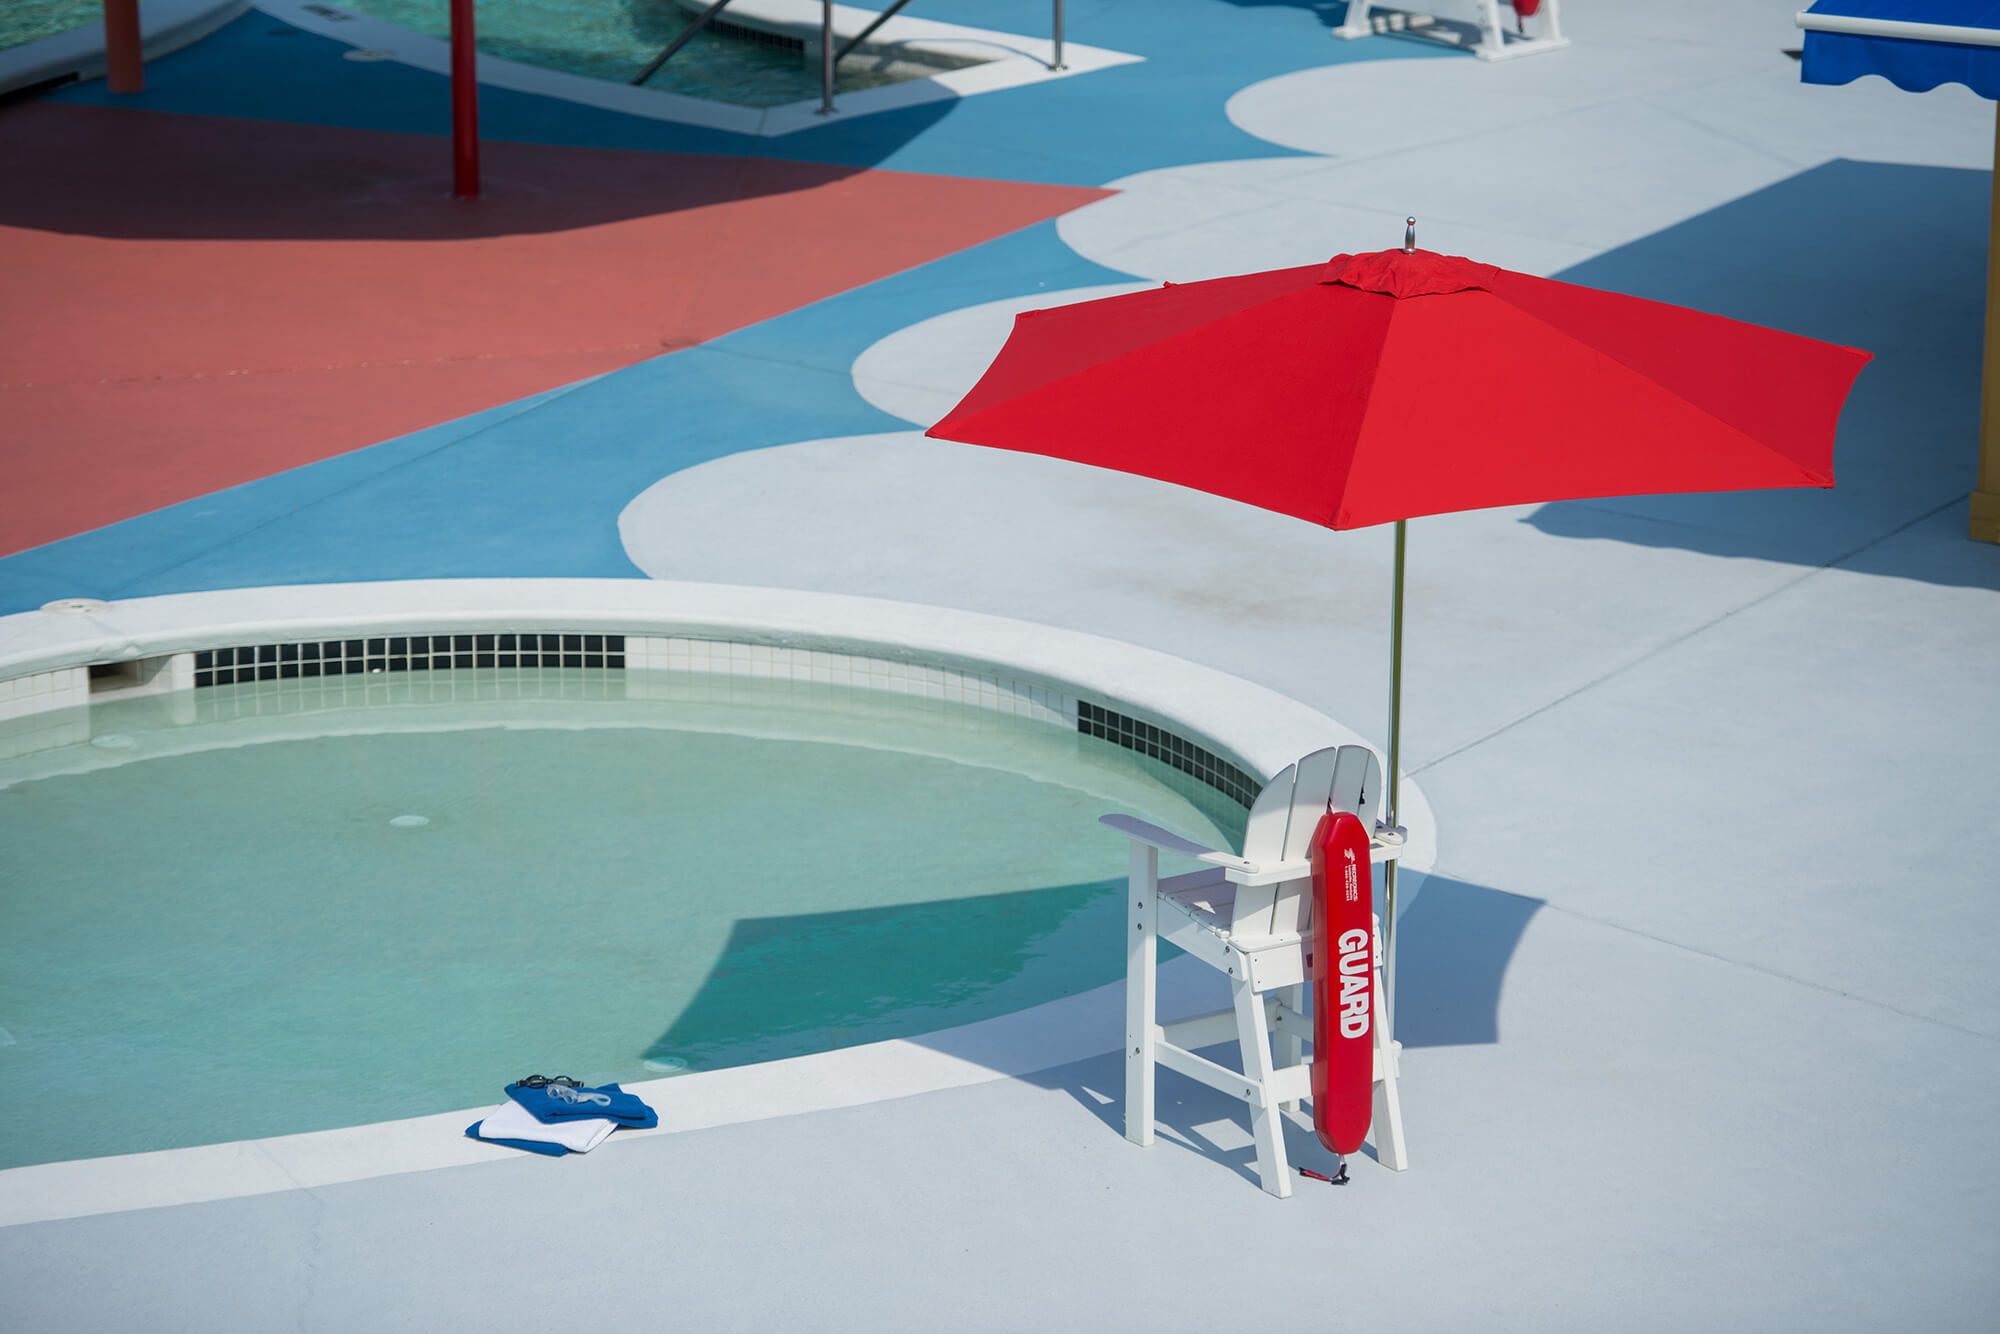 A red umbrella with Sunbrella fabrics shading a lifeguard chair